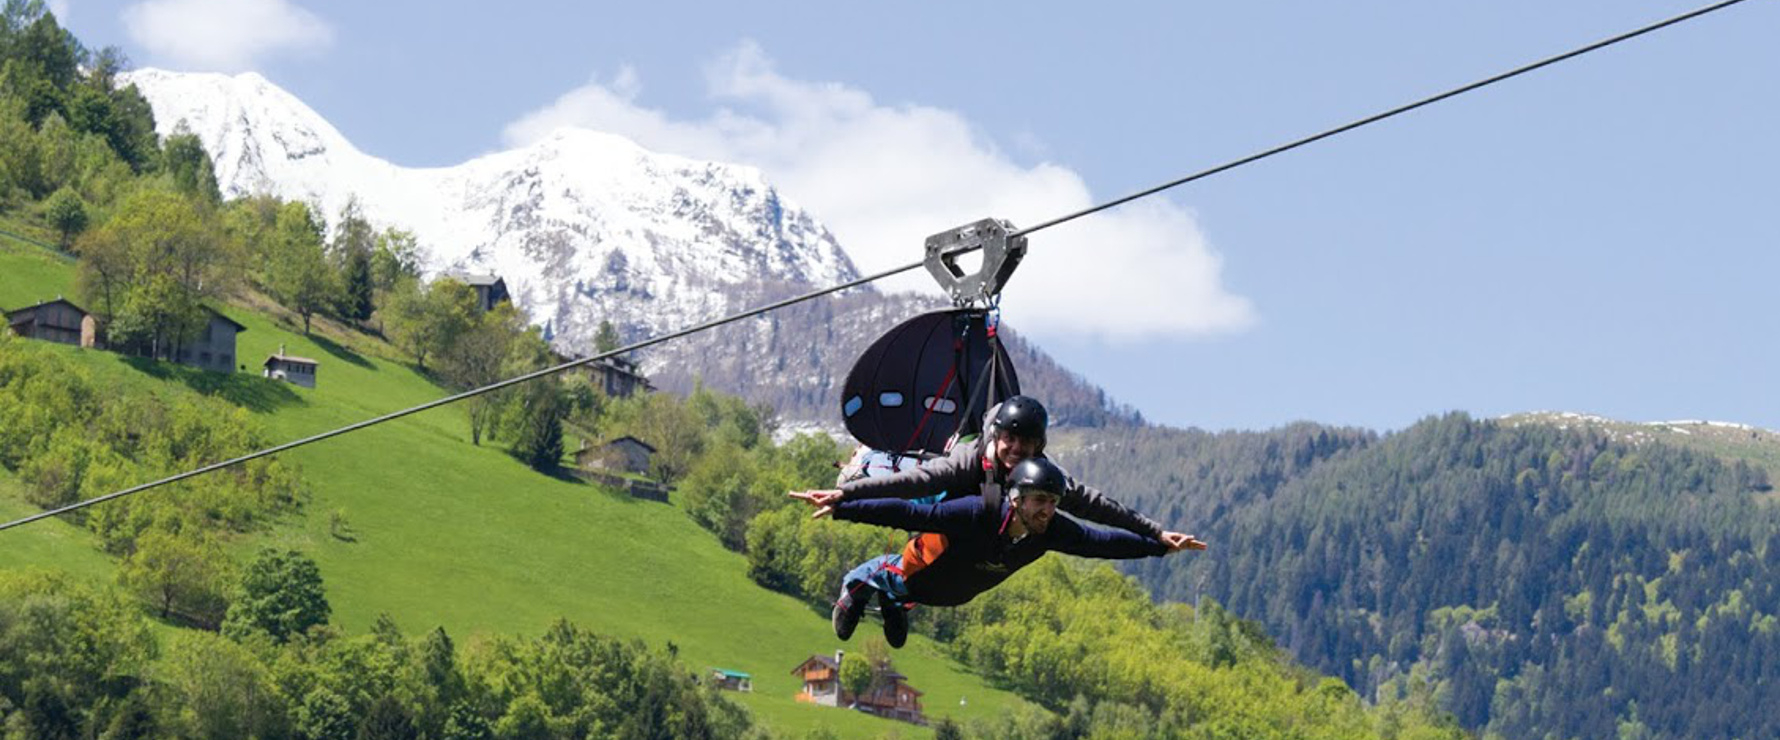 Fly emotion in Valtellina